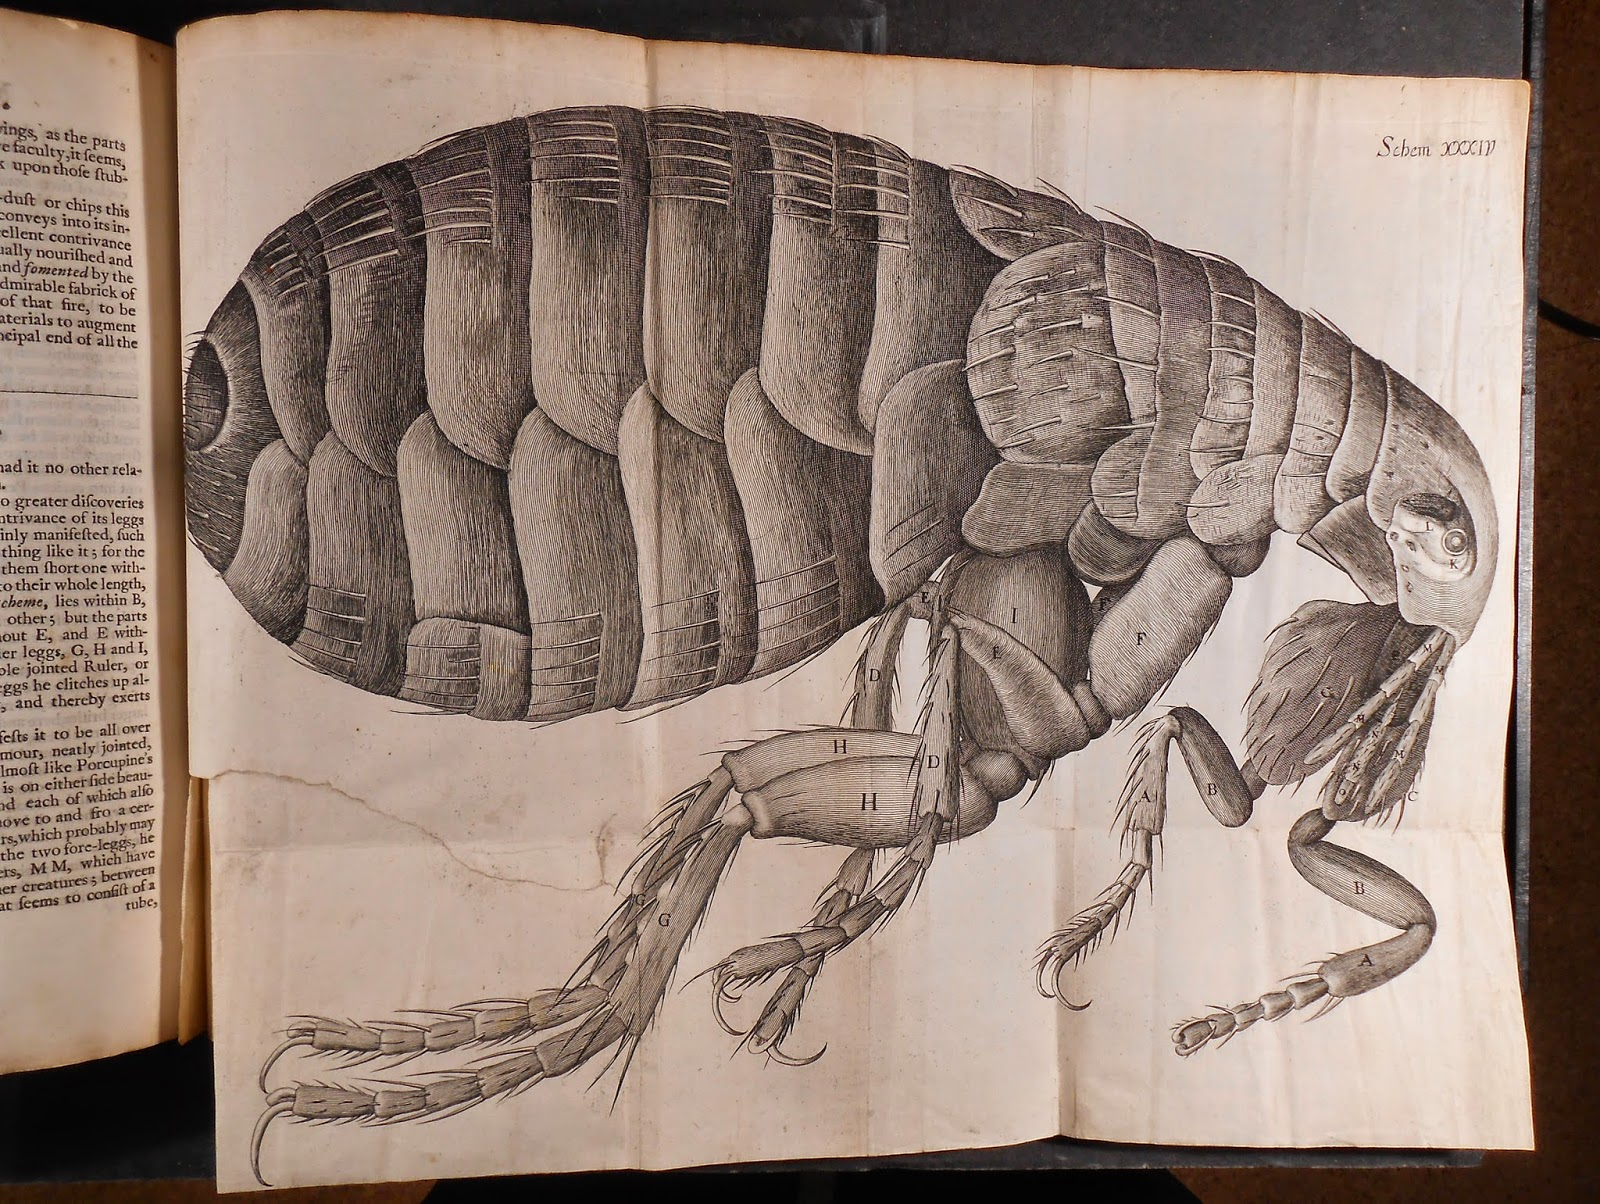 A large, fold-out illustration of a flea.